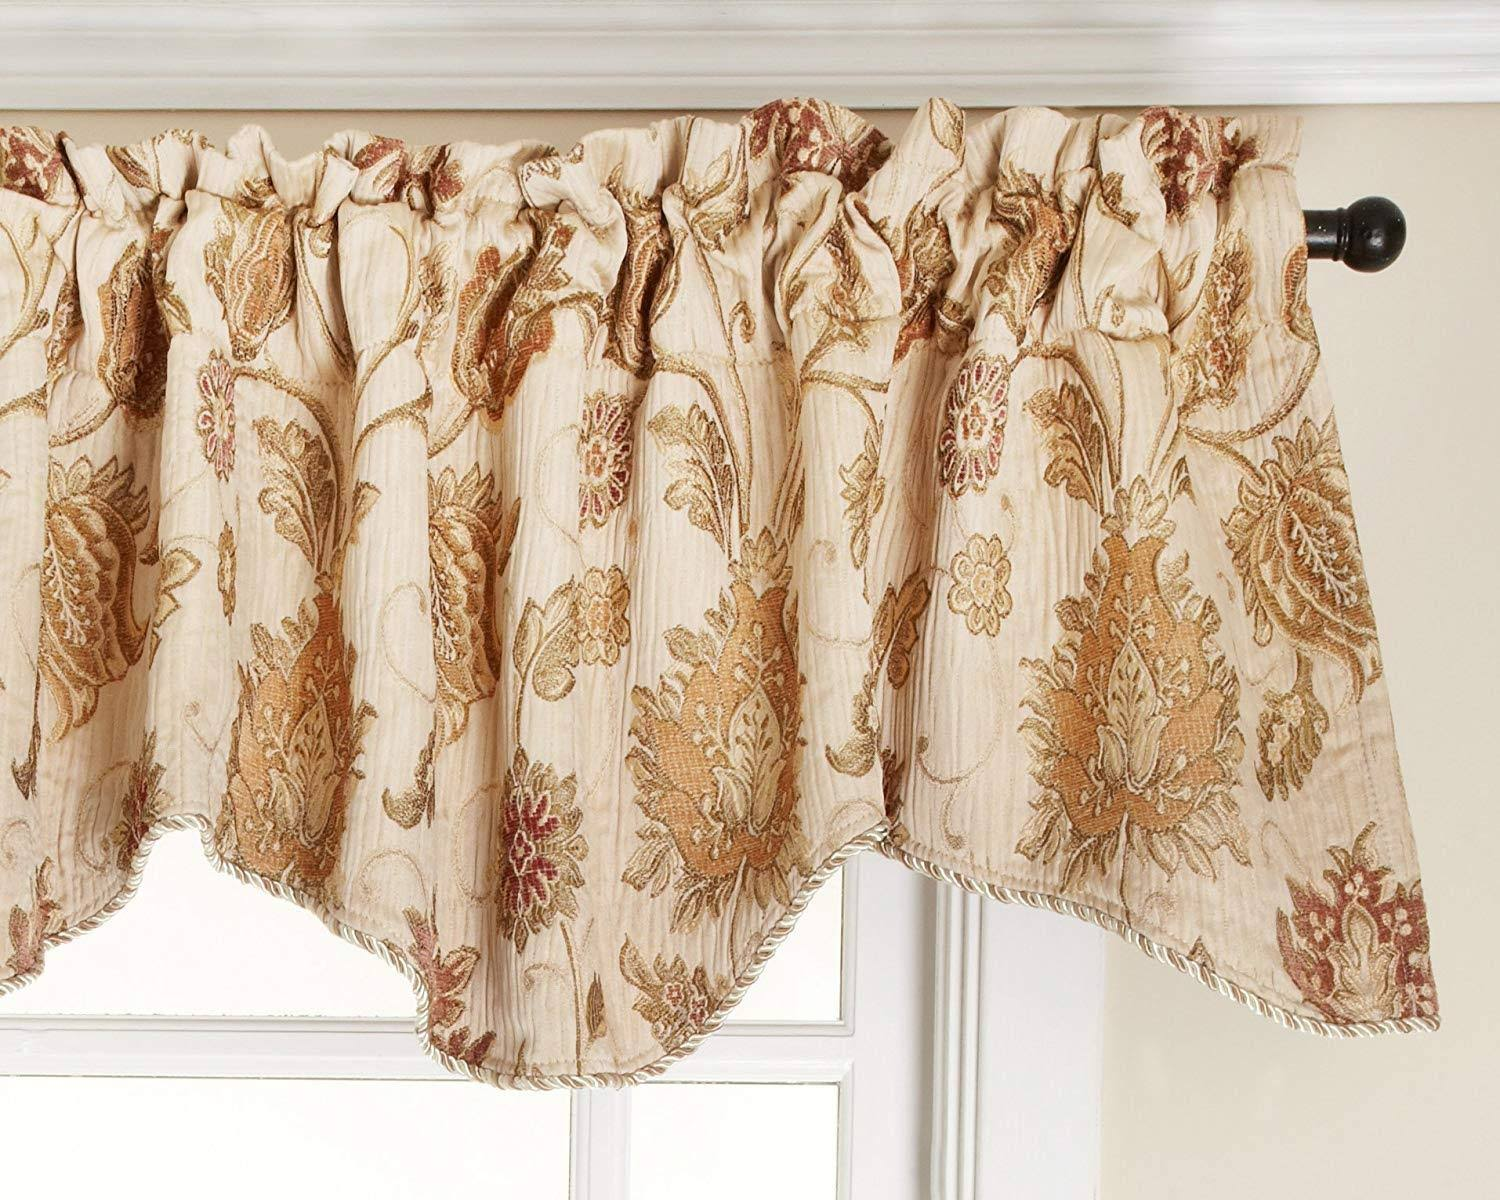 Renaissance Home Fashion Melbourne Chenille Scalloped Valance with Cording, Ivory, 52-Inch by 17-inch